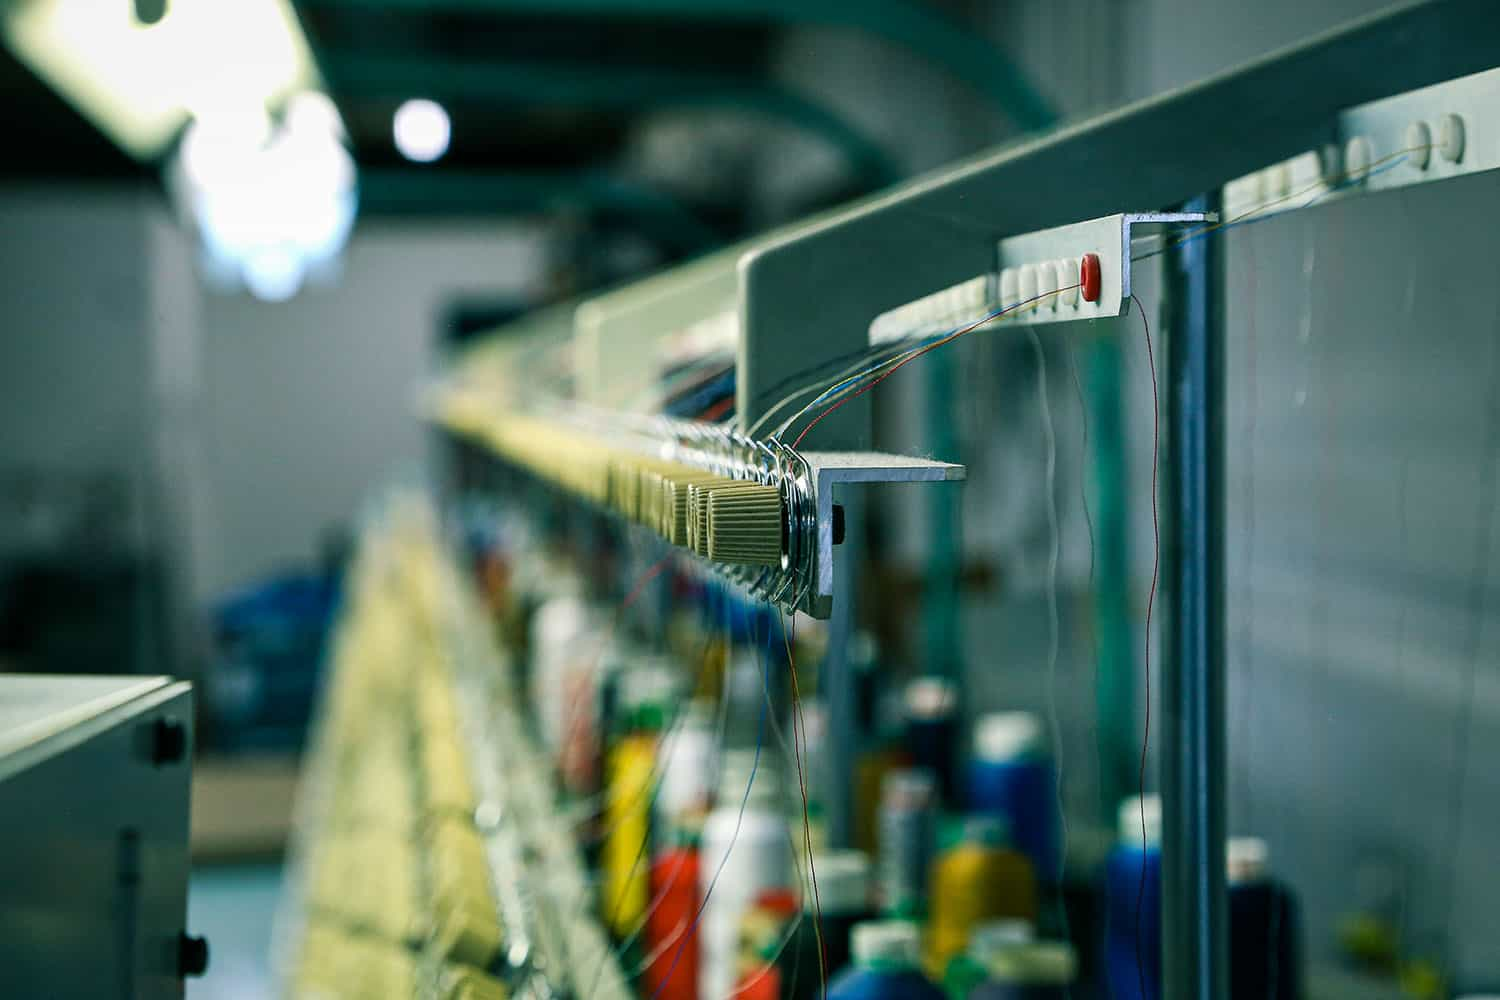 Thread rolls on embroidery machines